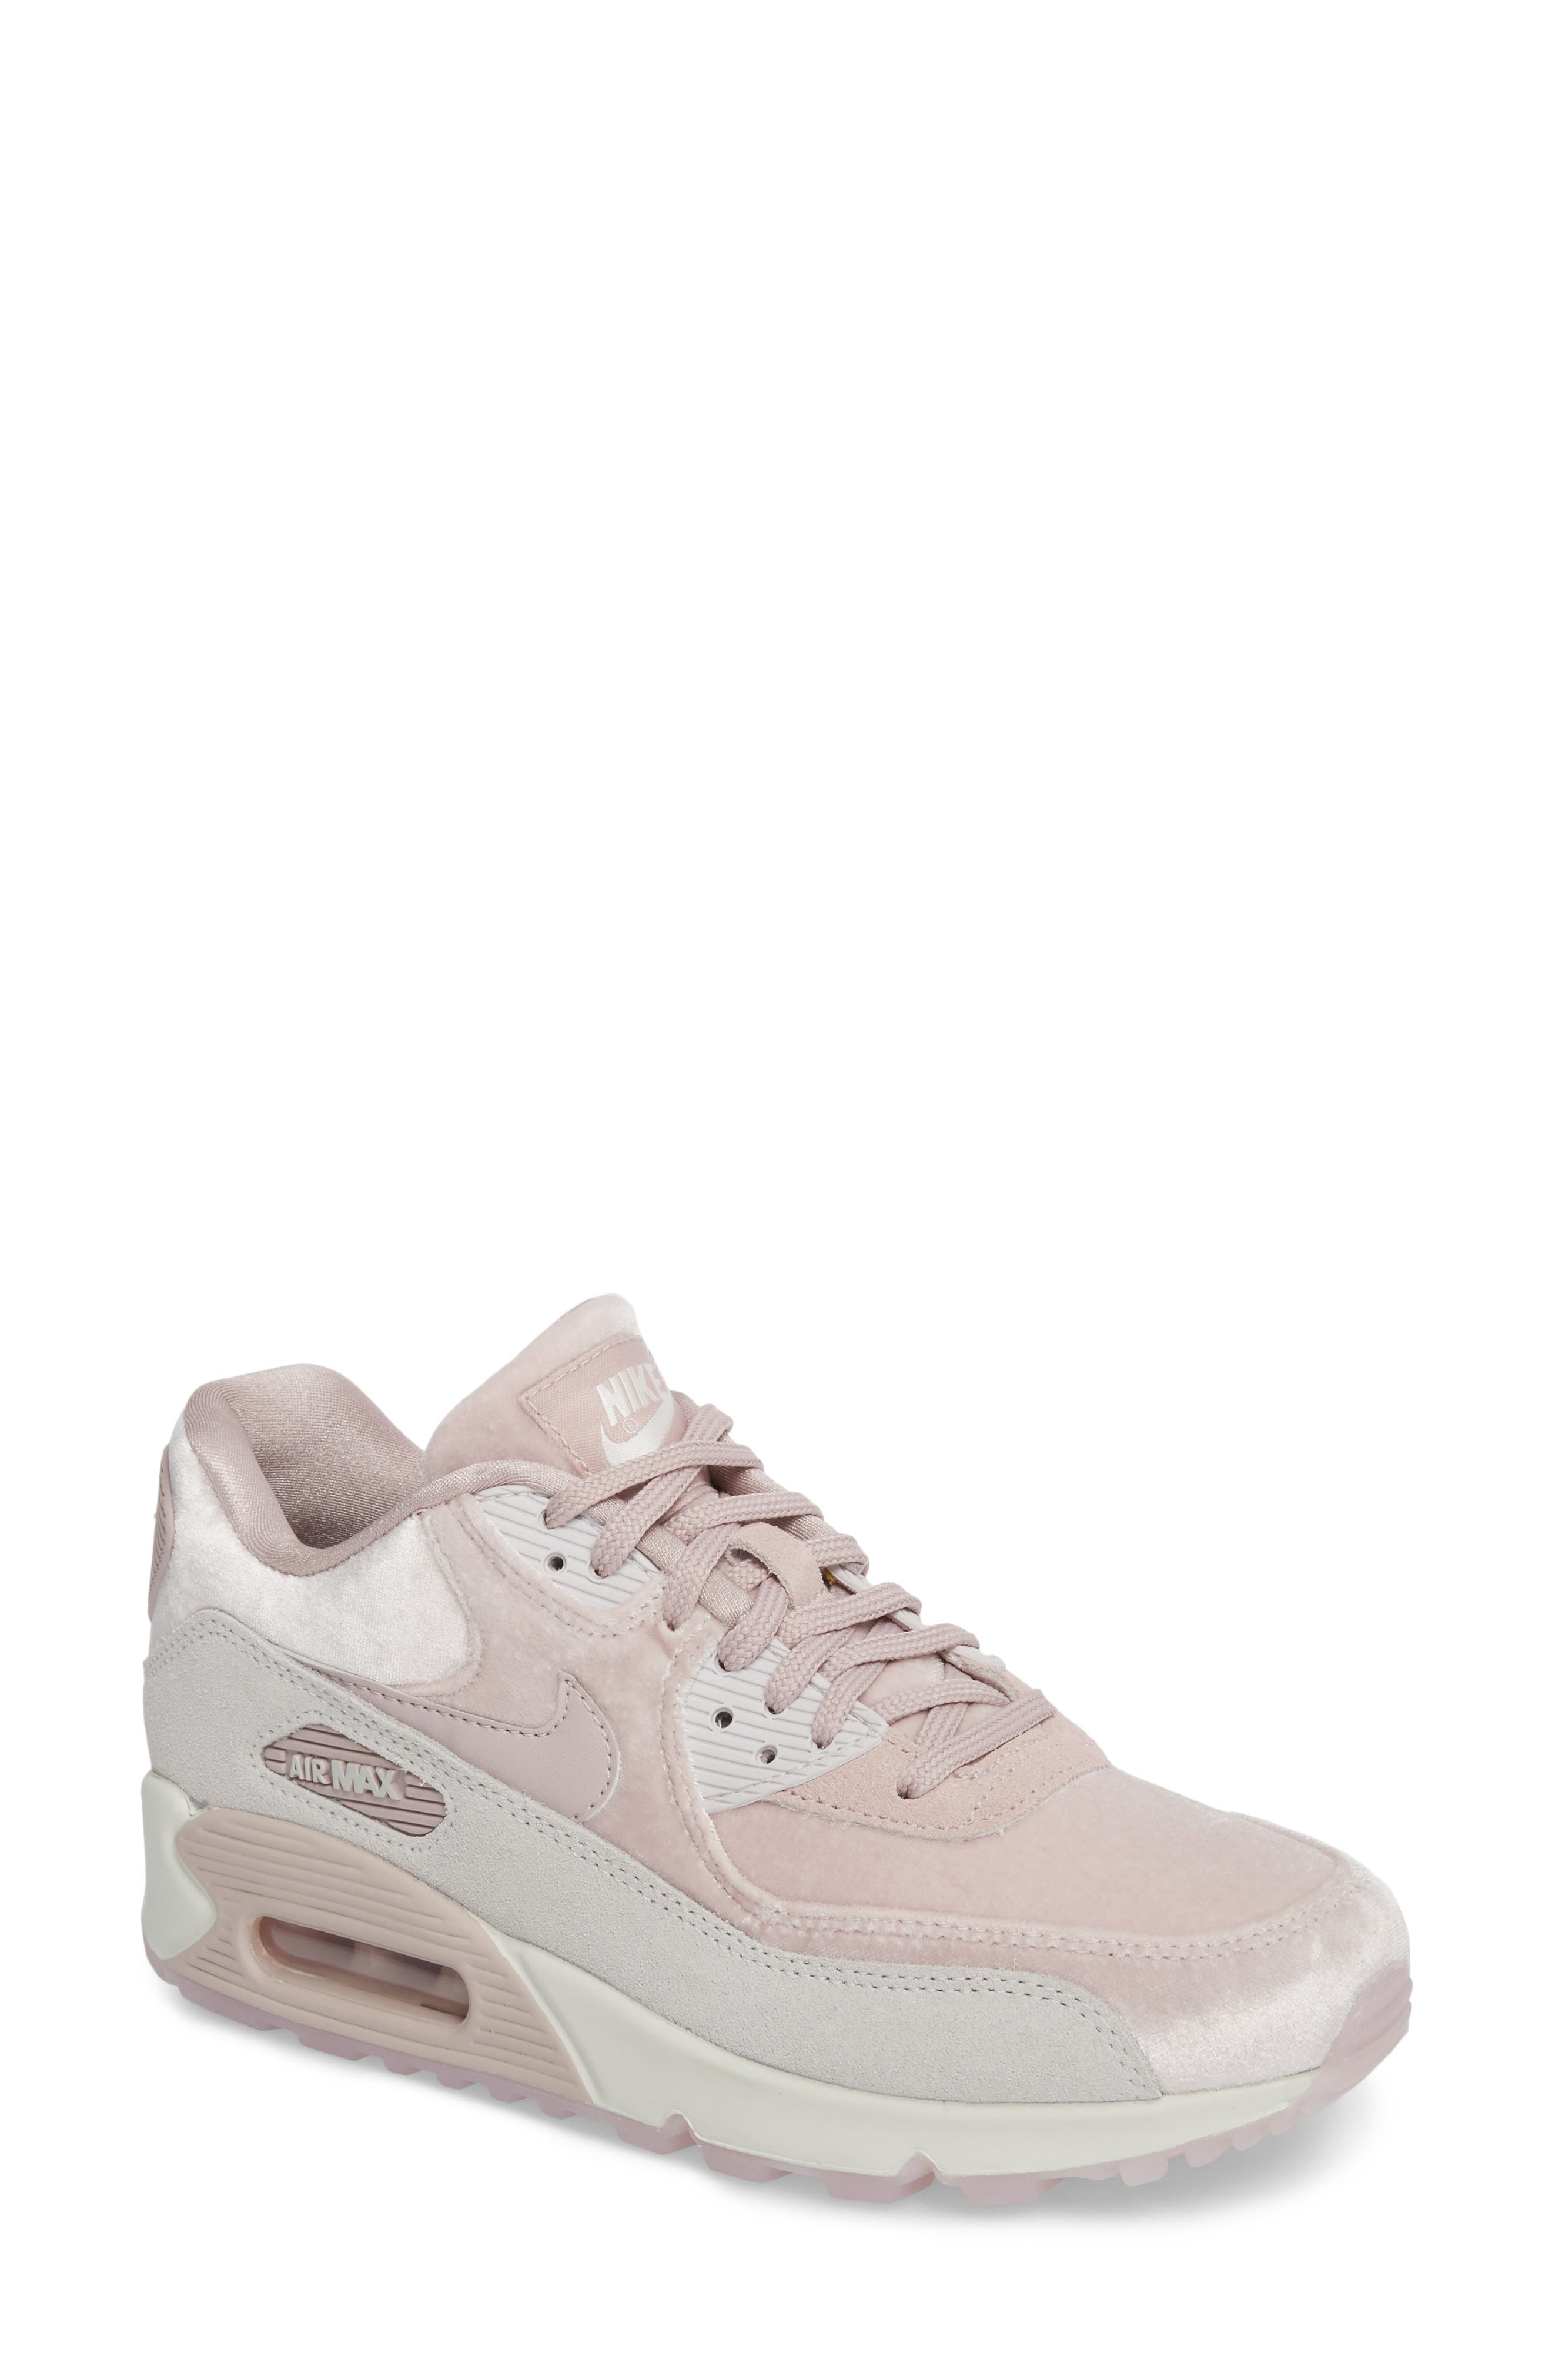 Air Max 90 LX Sneaker,                             Main thumbnail 1, color,                             Particle Rose/ Particle Rose